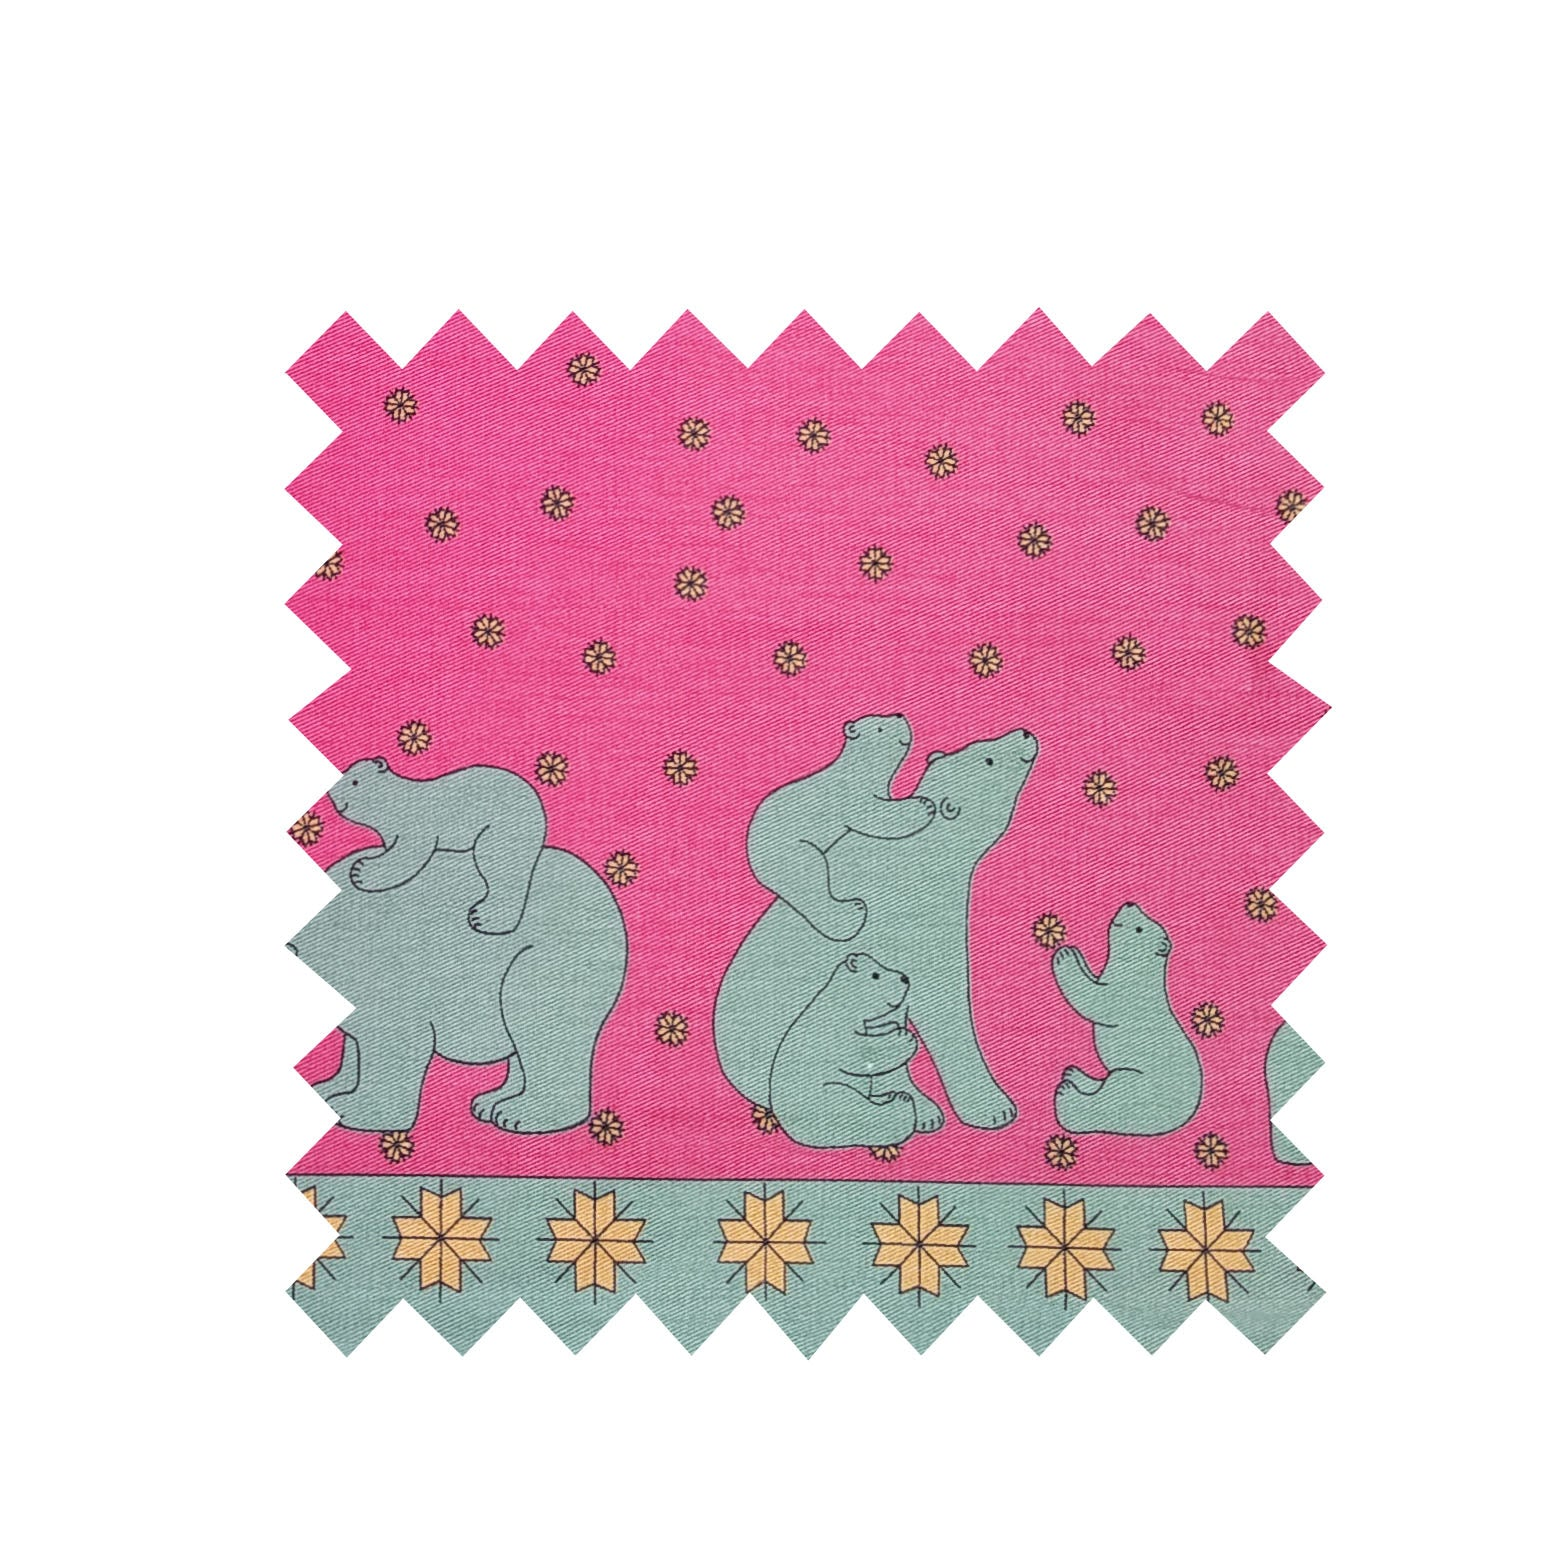 Pink/Green Polar Bear Fabric - Cotton twill